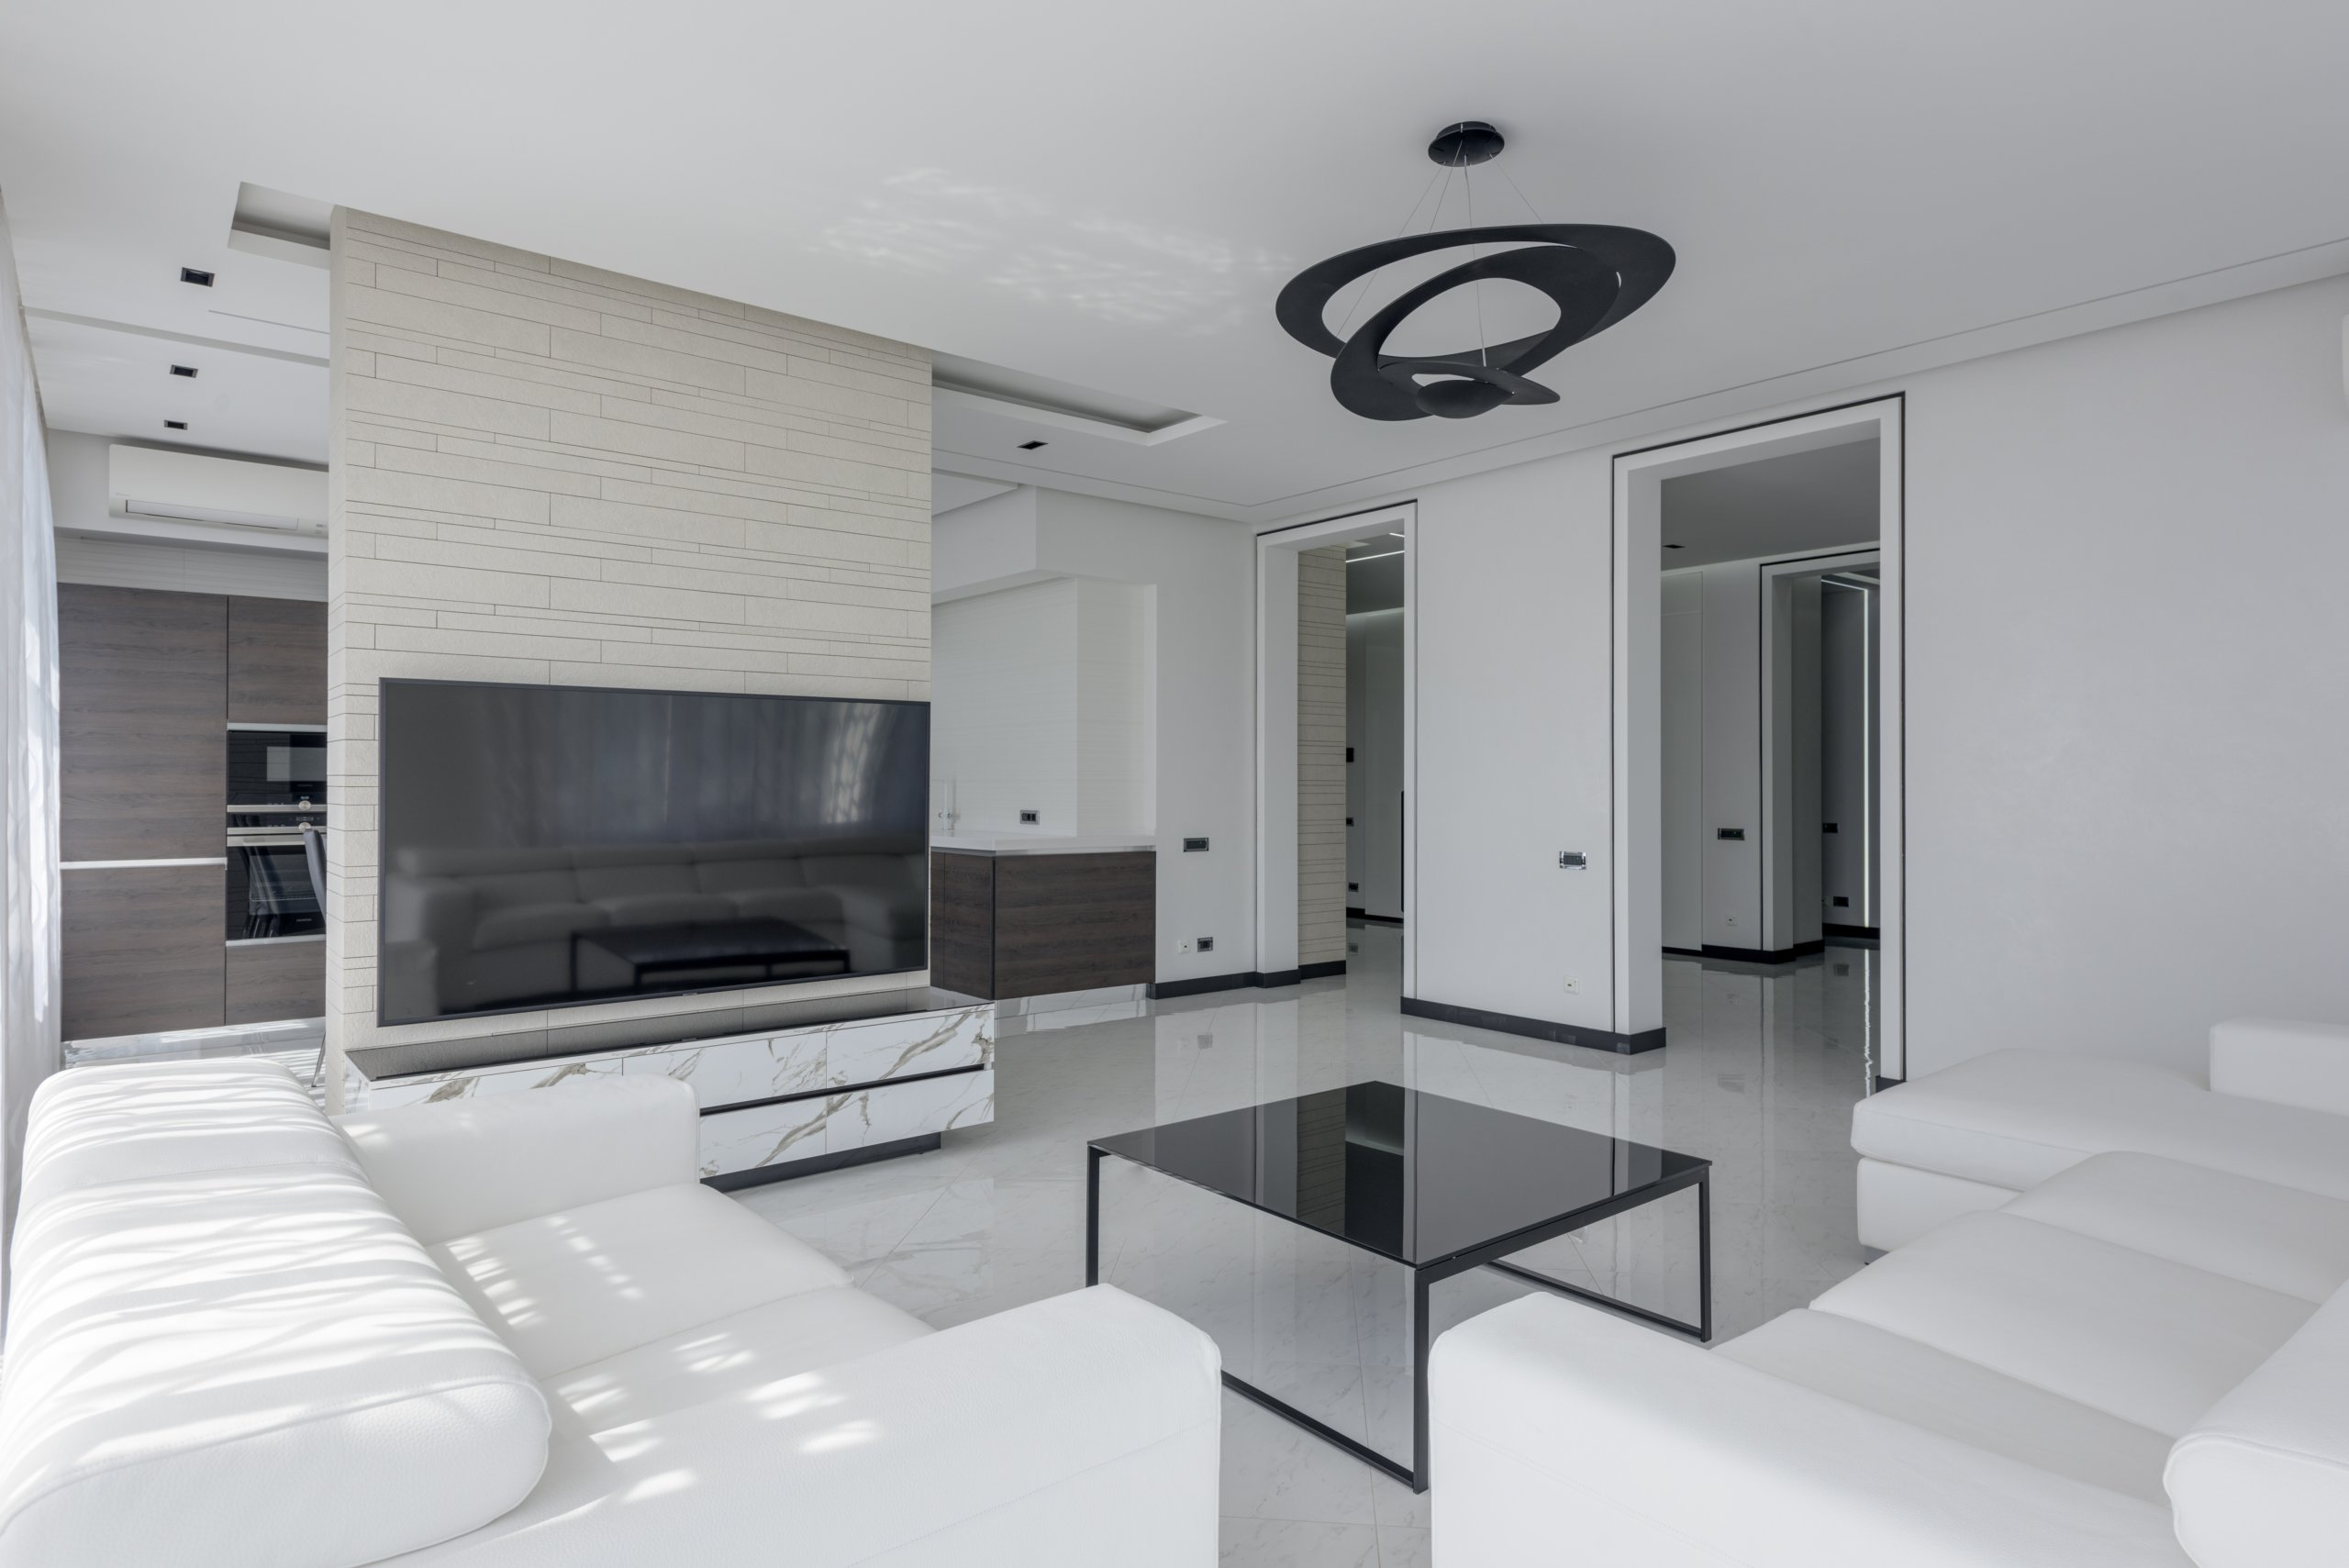 White-themed interior